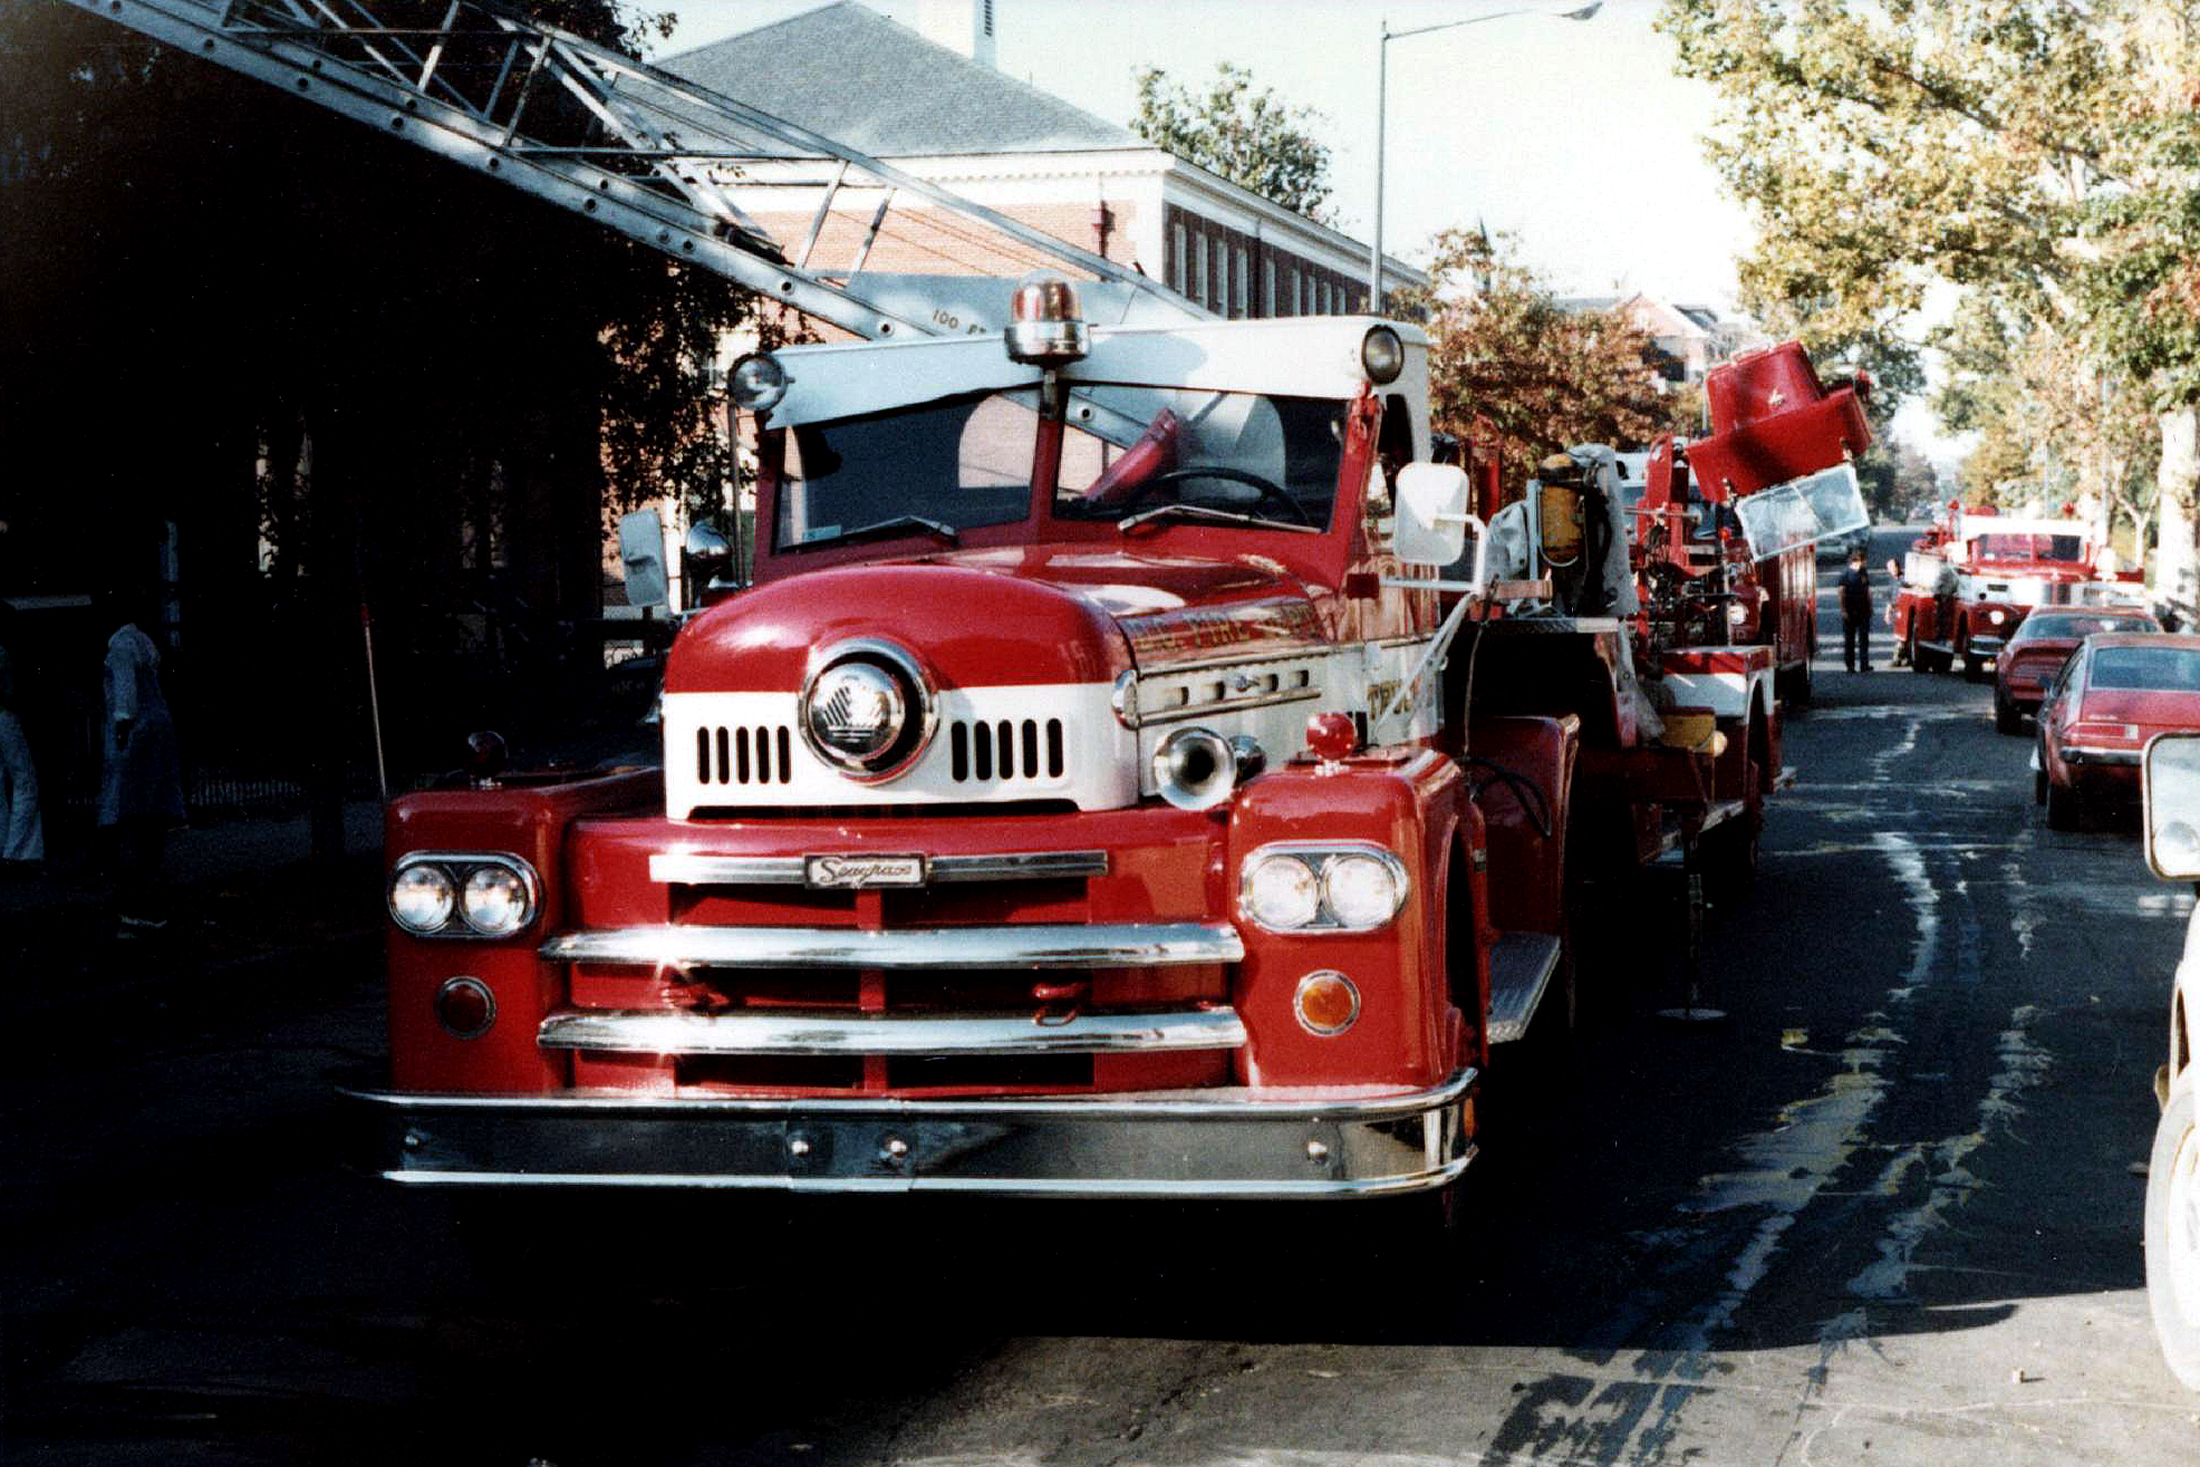 Seagrave Fire Apparatus >> DC, Dictrict of Columbia Fire Department Old Ladder